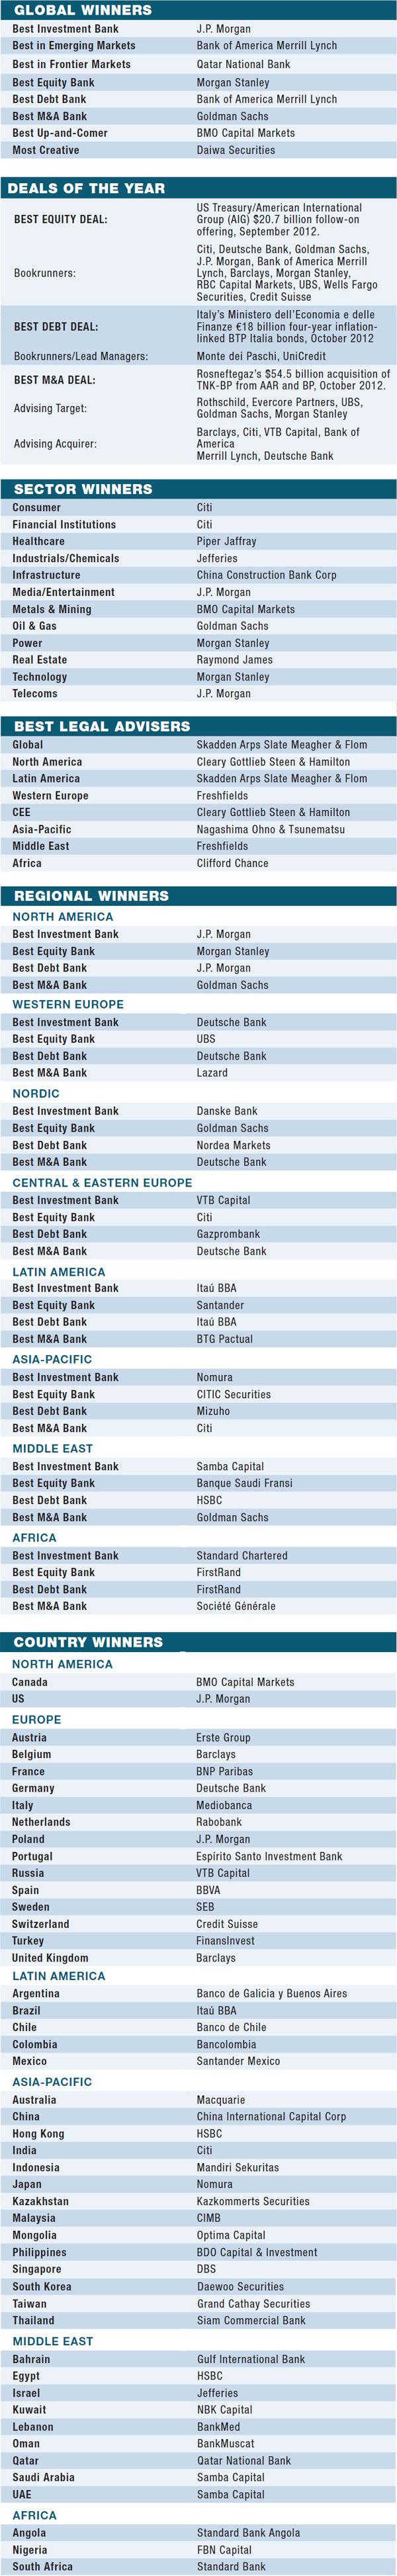 08g-world-best-investment-banks